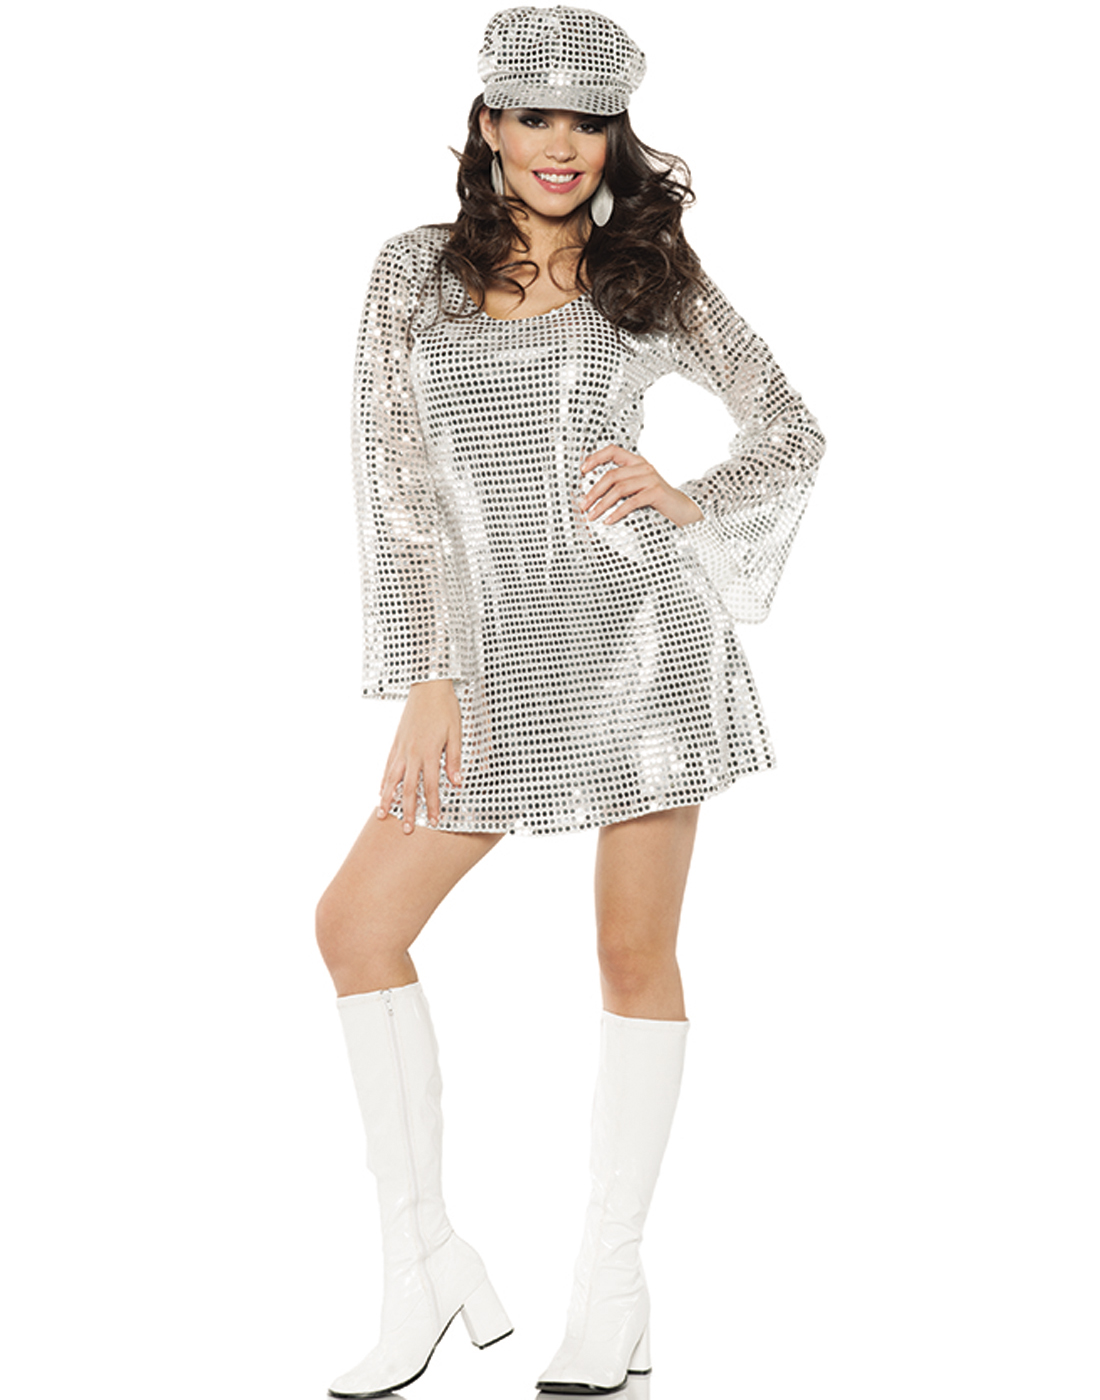 Shimmer Silver Metallic Womens 1970's Disco Outfit ...